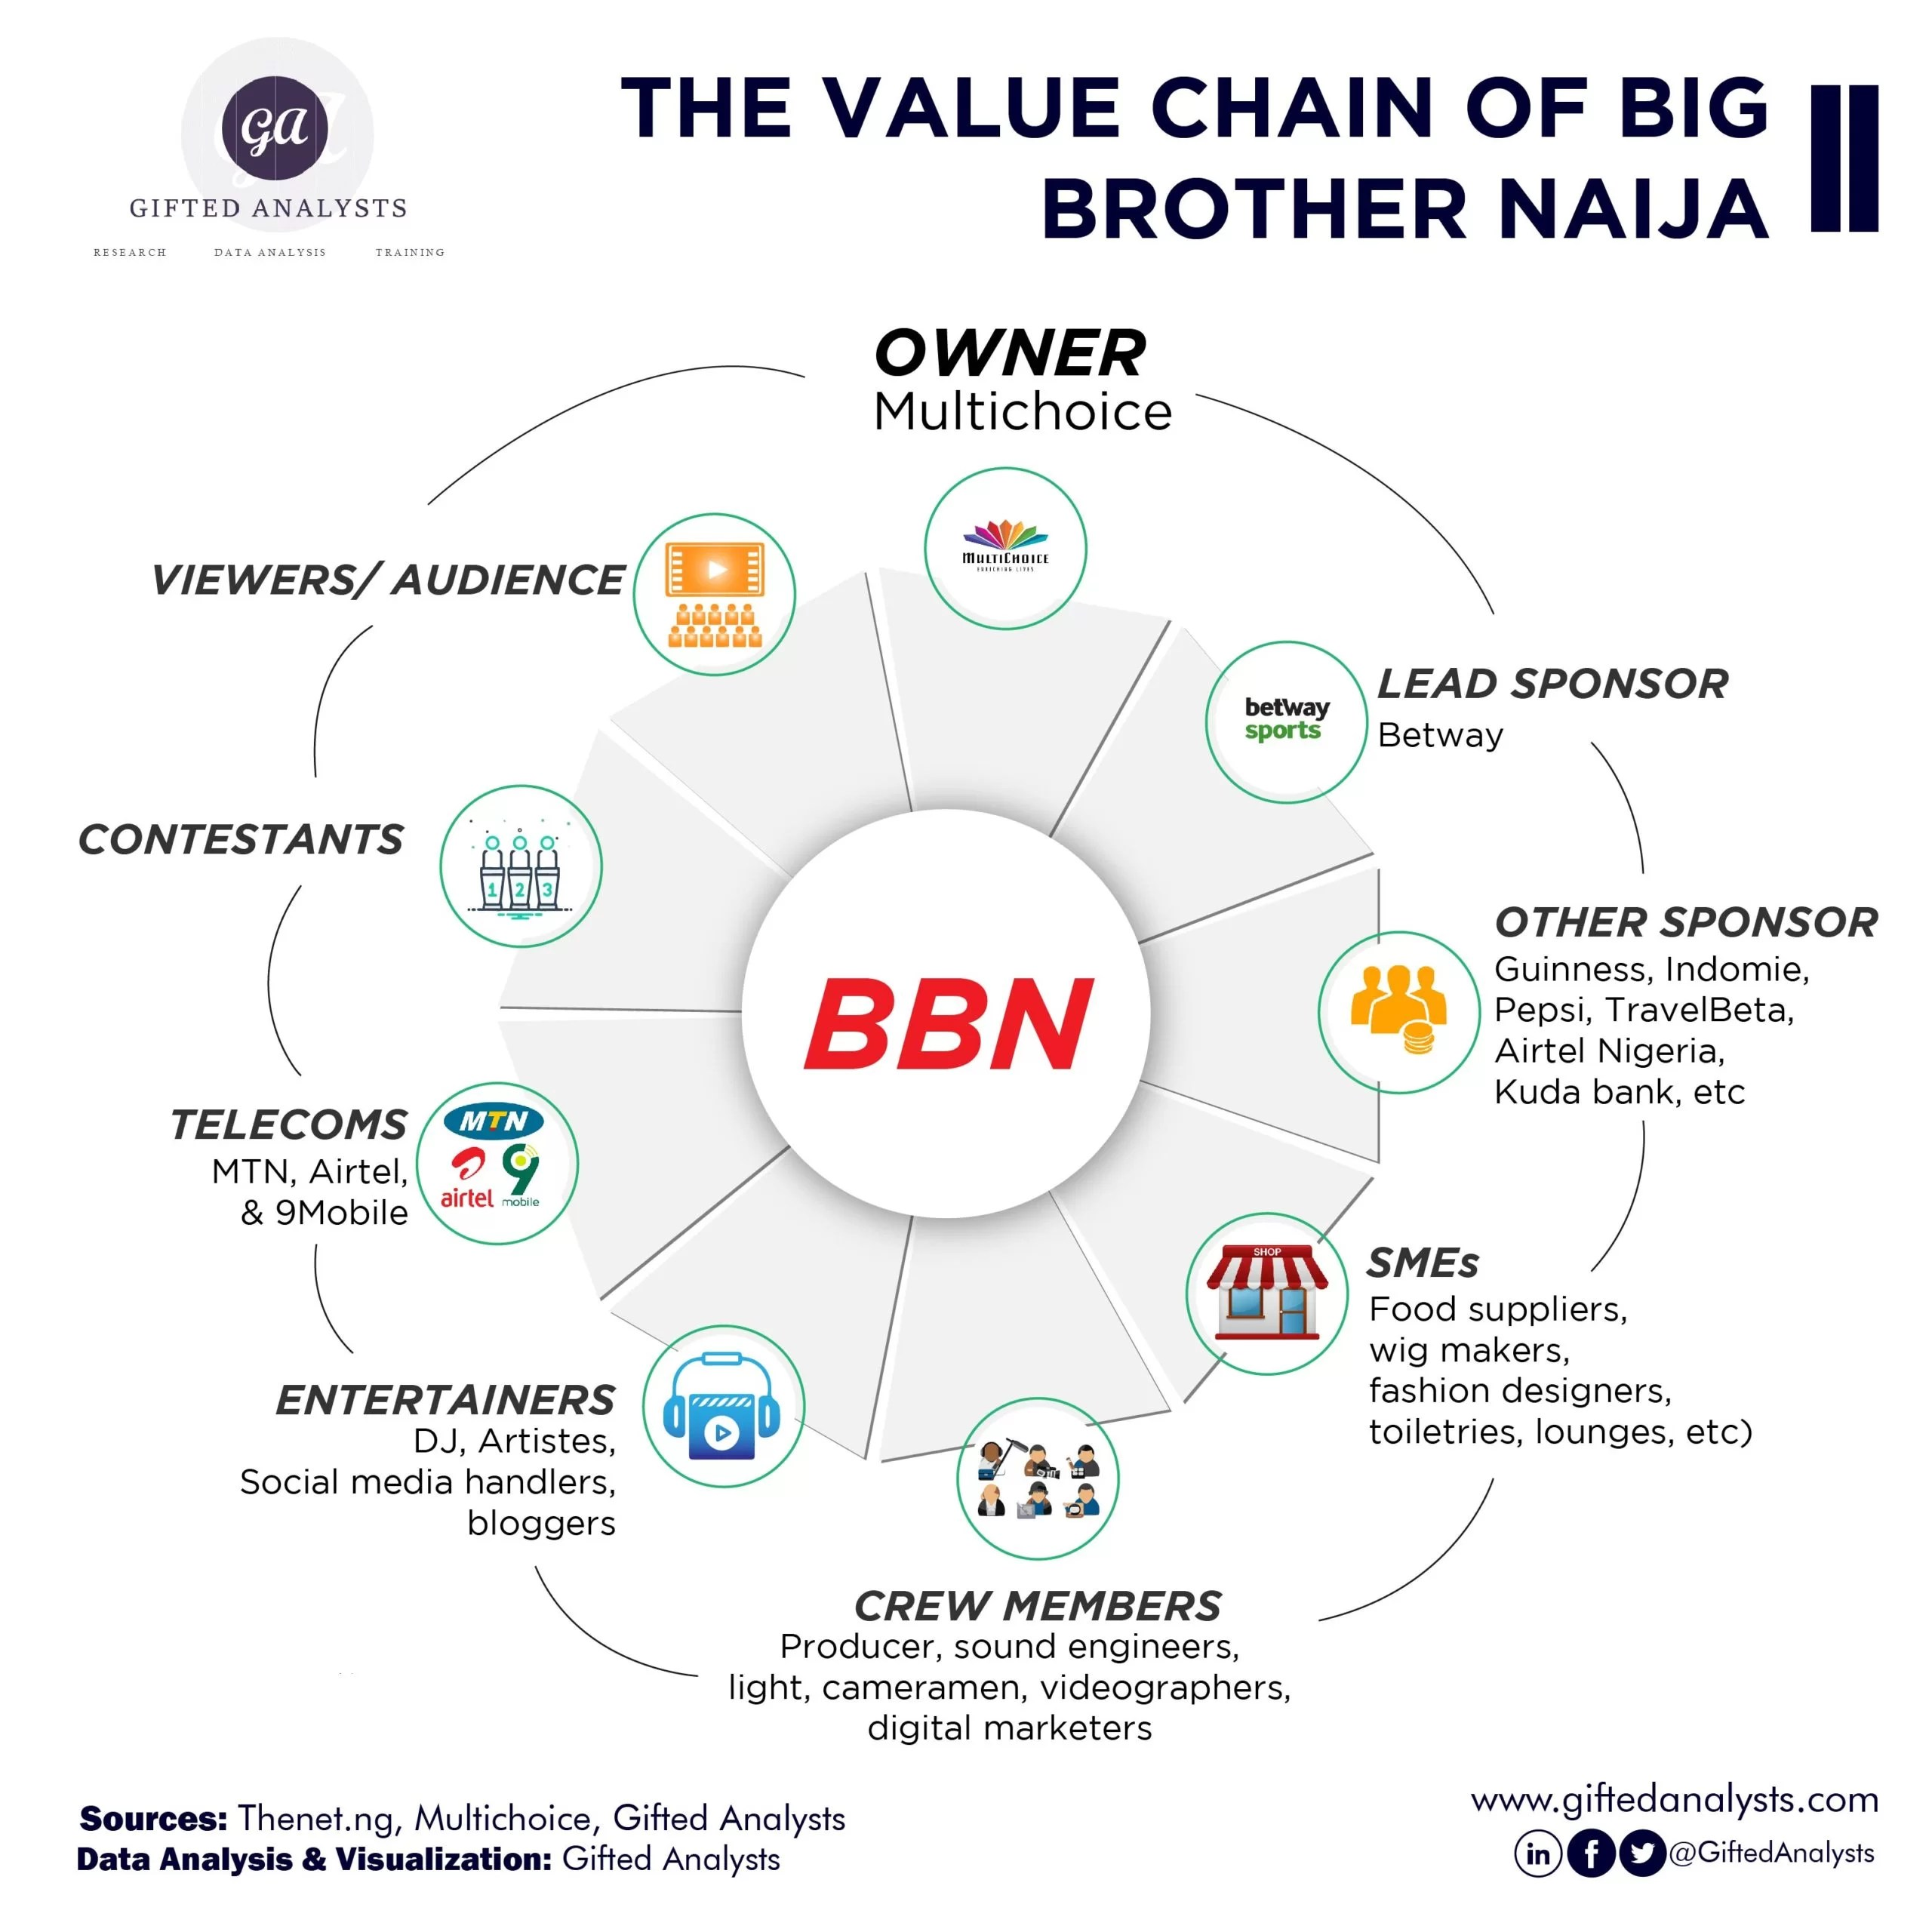 The Economics of Big Brother Naija (BBN)